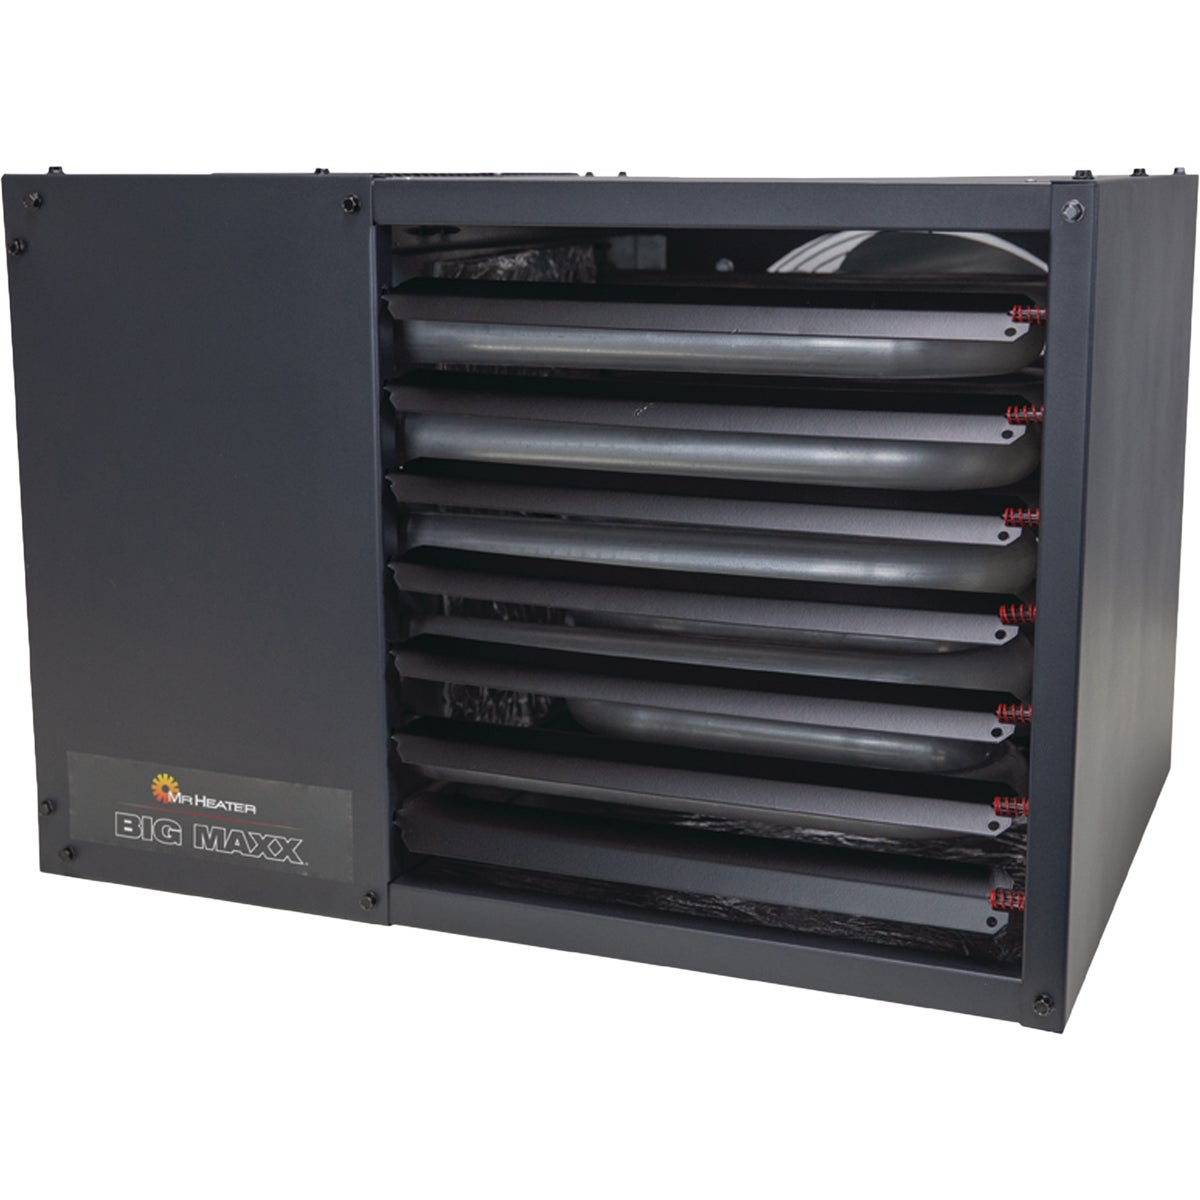 80K NG SUSPENDED HEATER - F260440 by Mr Heater Corp